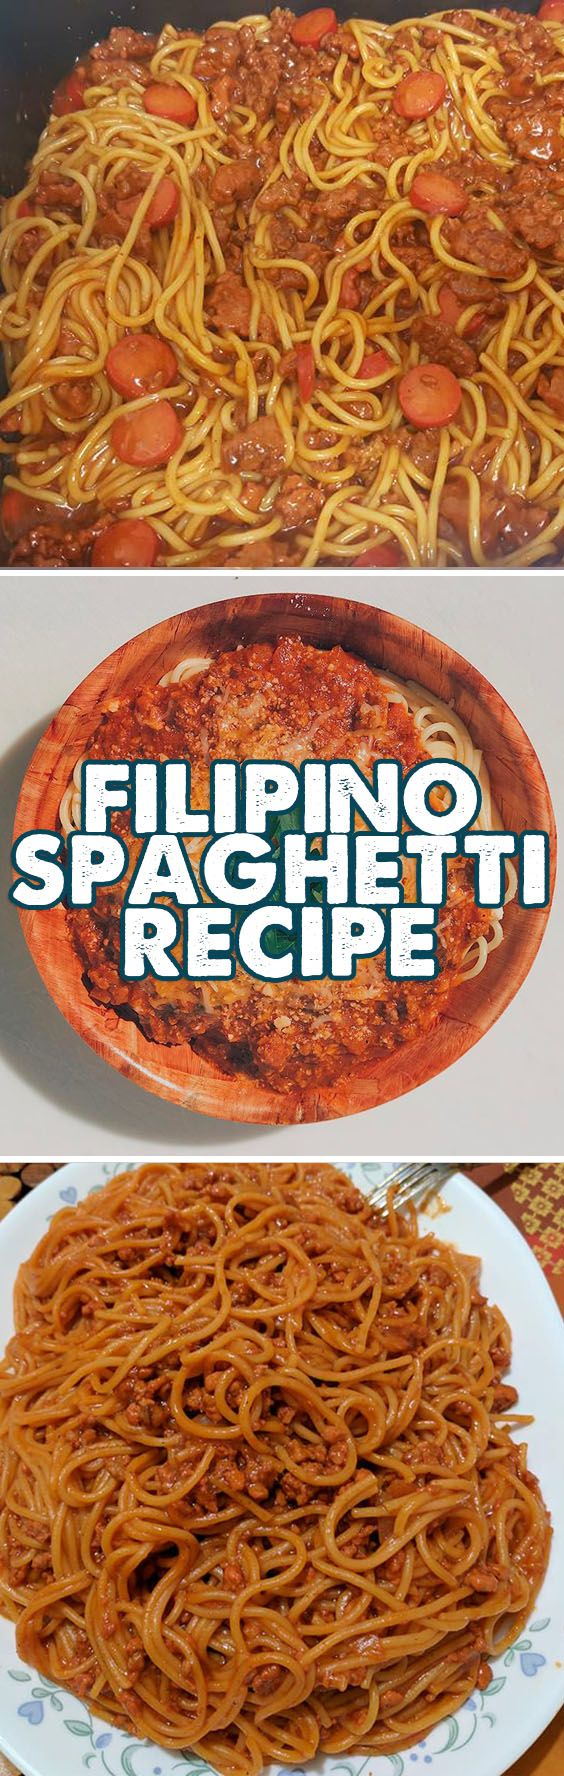 The Filipino Spaghetti Recipe is the Pinoy take on the Italian specialty, Spaghetti Bolognese which is sourer compared to our sweet style version. Some people find it odd that Pinoys put some sugar in this recipe but we Filipinos love sugar and we love dishes that are sweet.